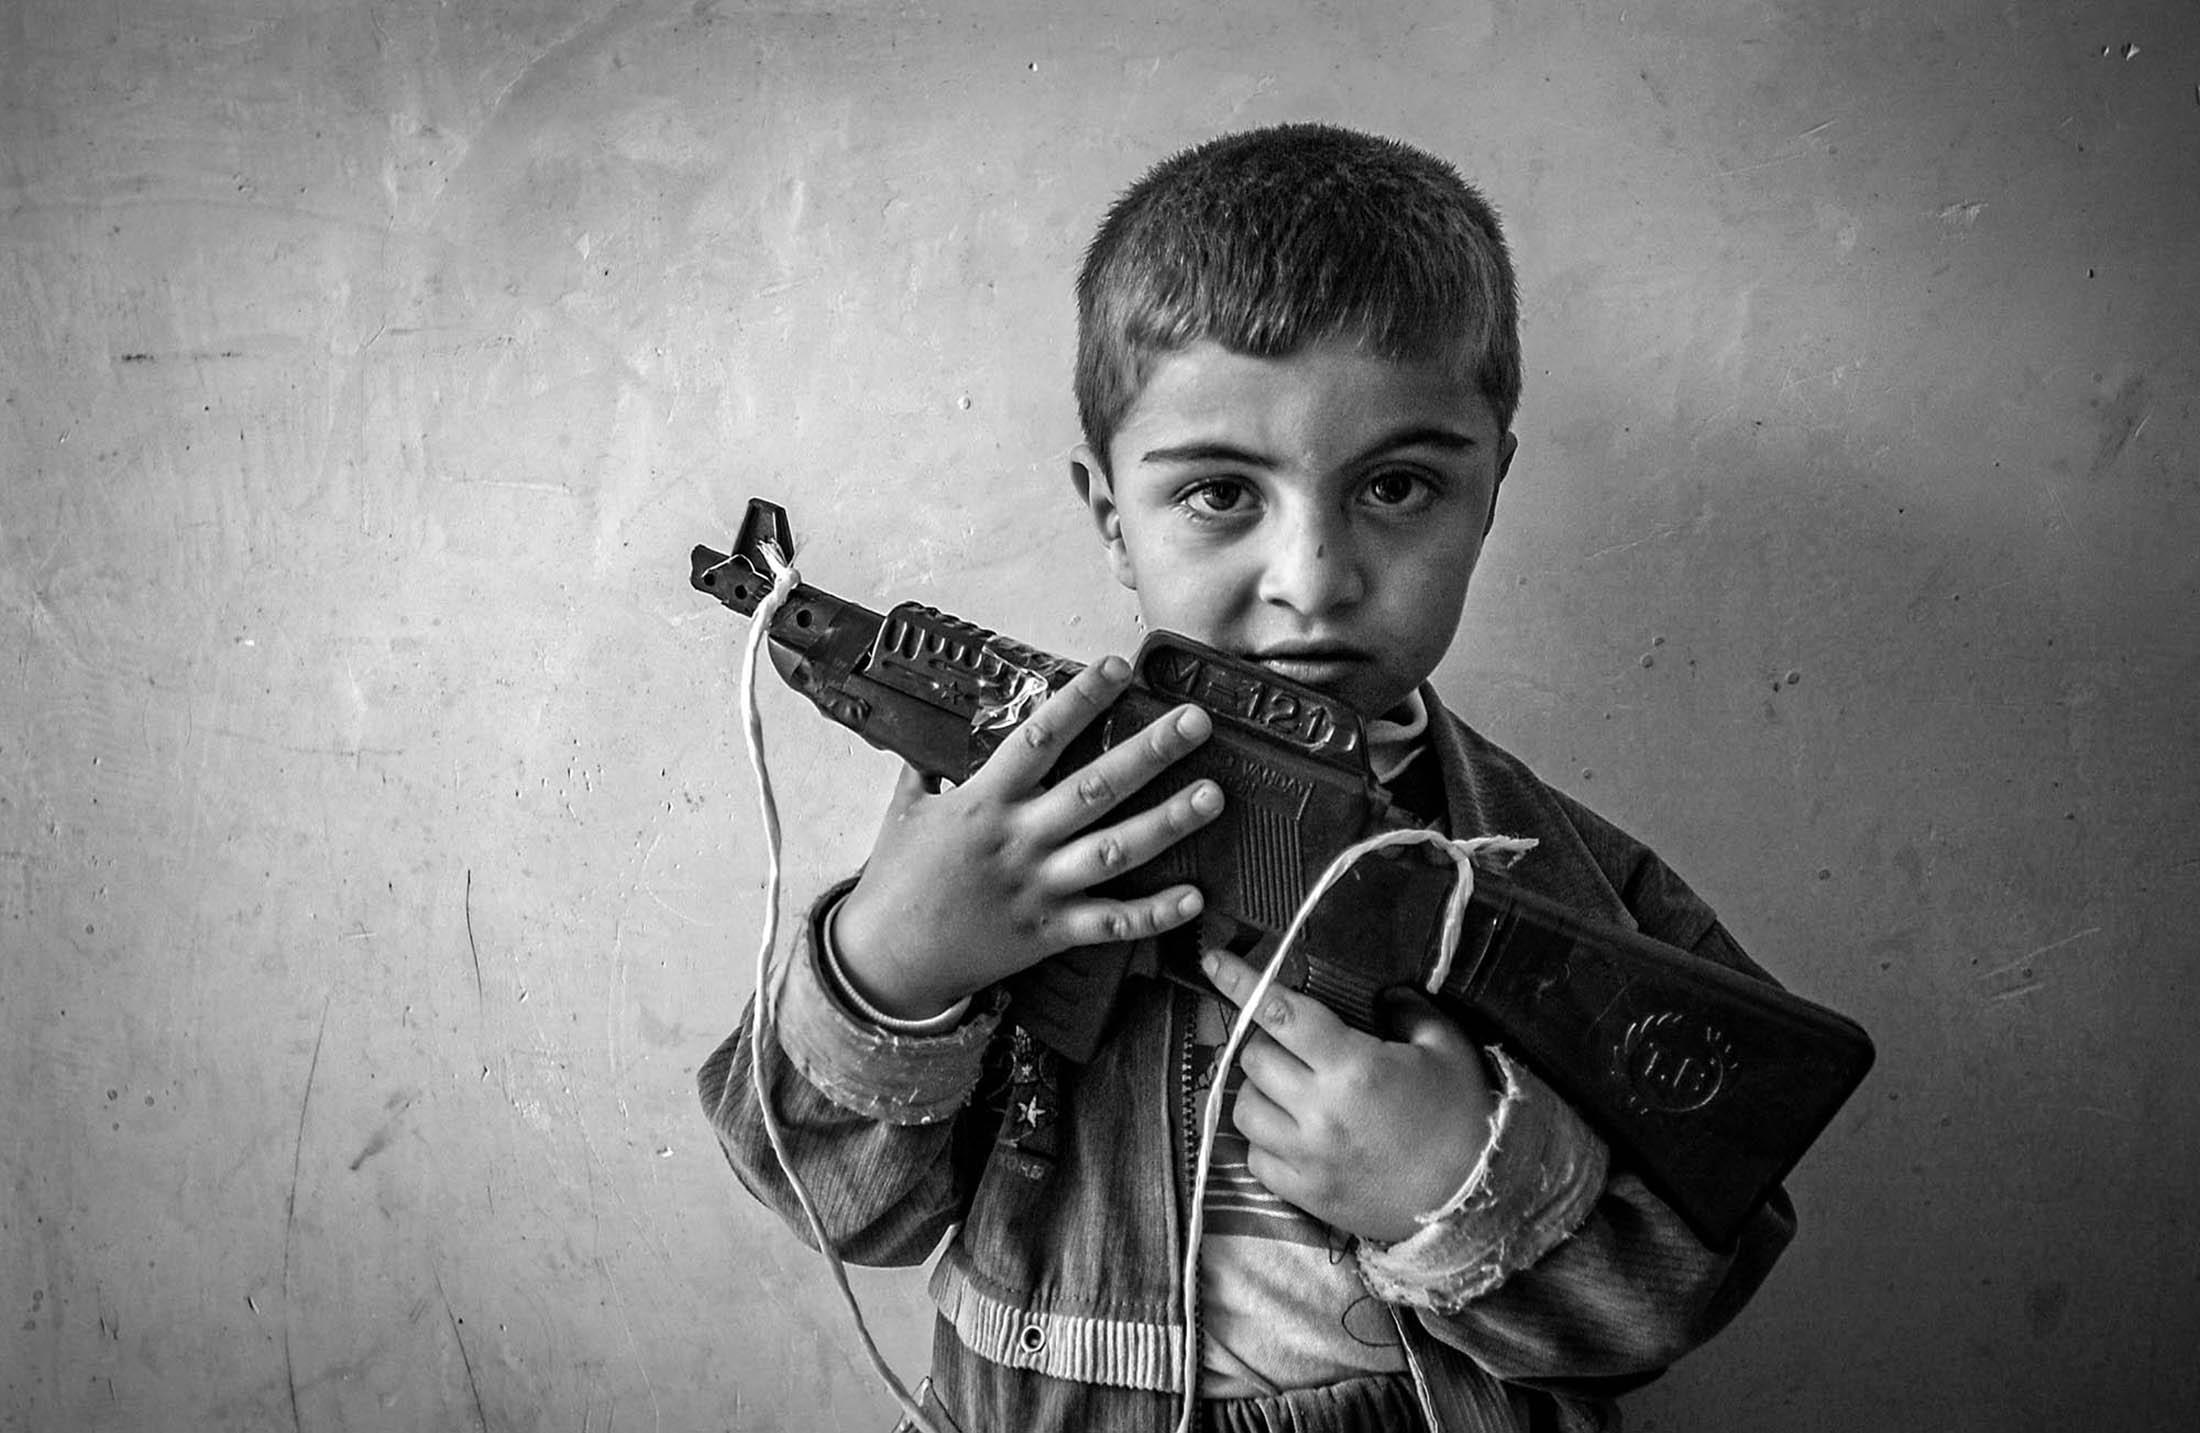 4-year-old Bawan Ahmad Salih holds his toy AK-47 assault rifle at his uncle's house in border town of Kalar Monday, April 7, 2003. Real AKs and RPGs rest against a wall in their living room. Weapons of war are often seen in open at many household, children growing up